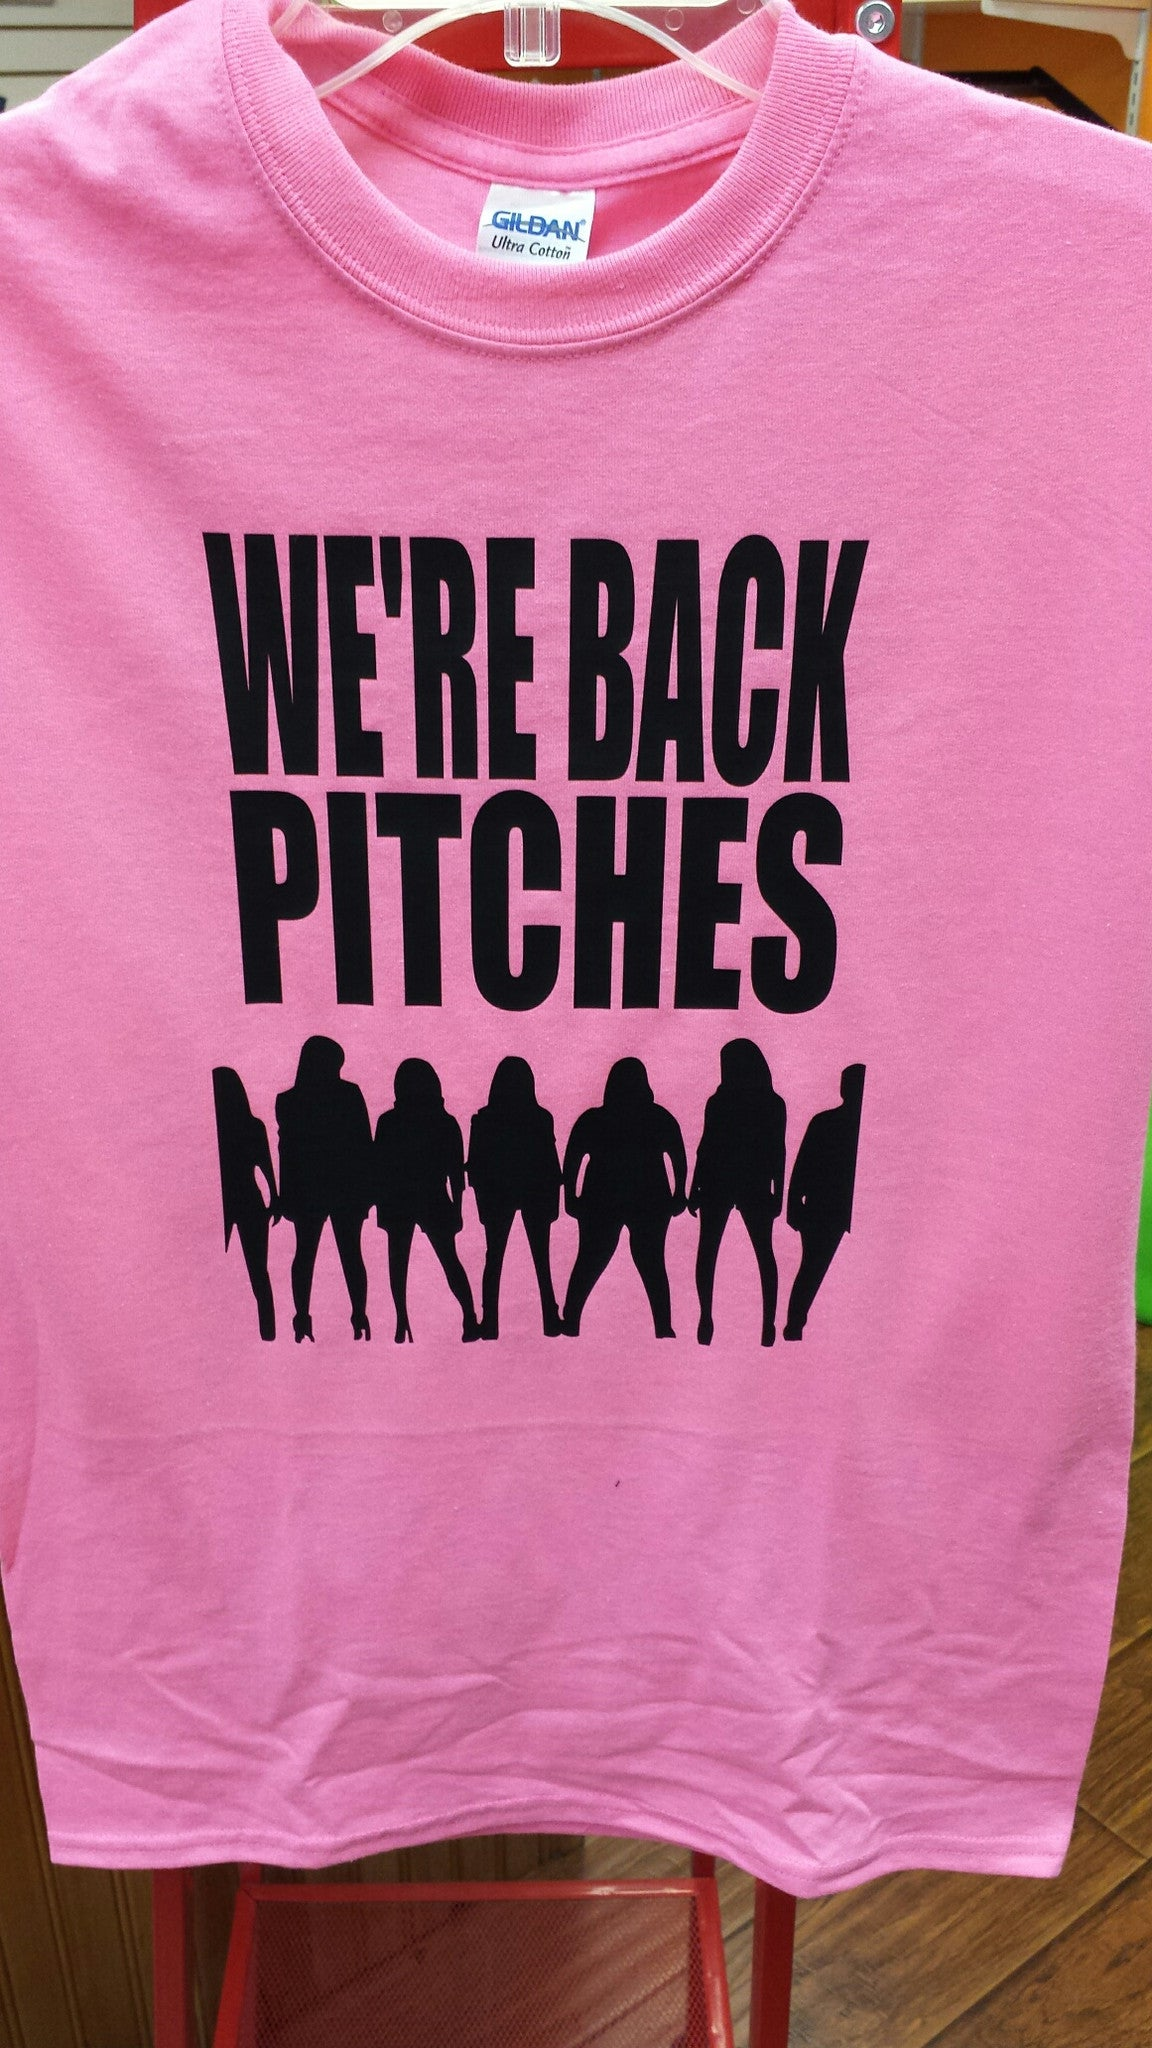 We're Back Pitches Pitch Perfect 2 t-shirt